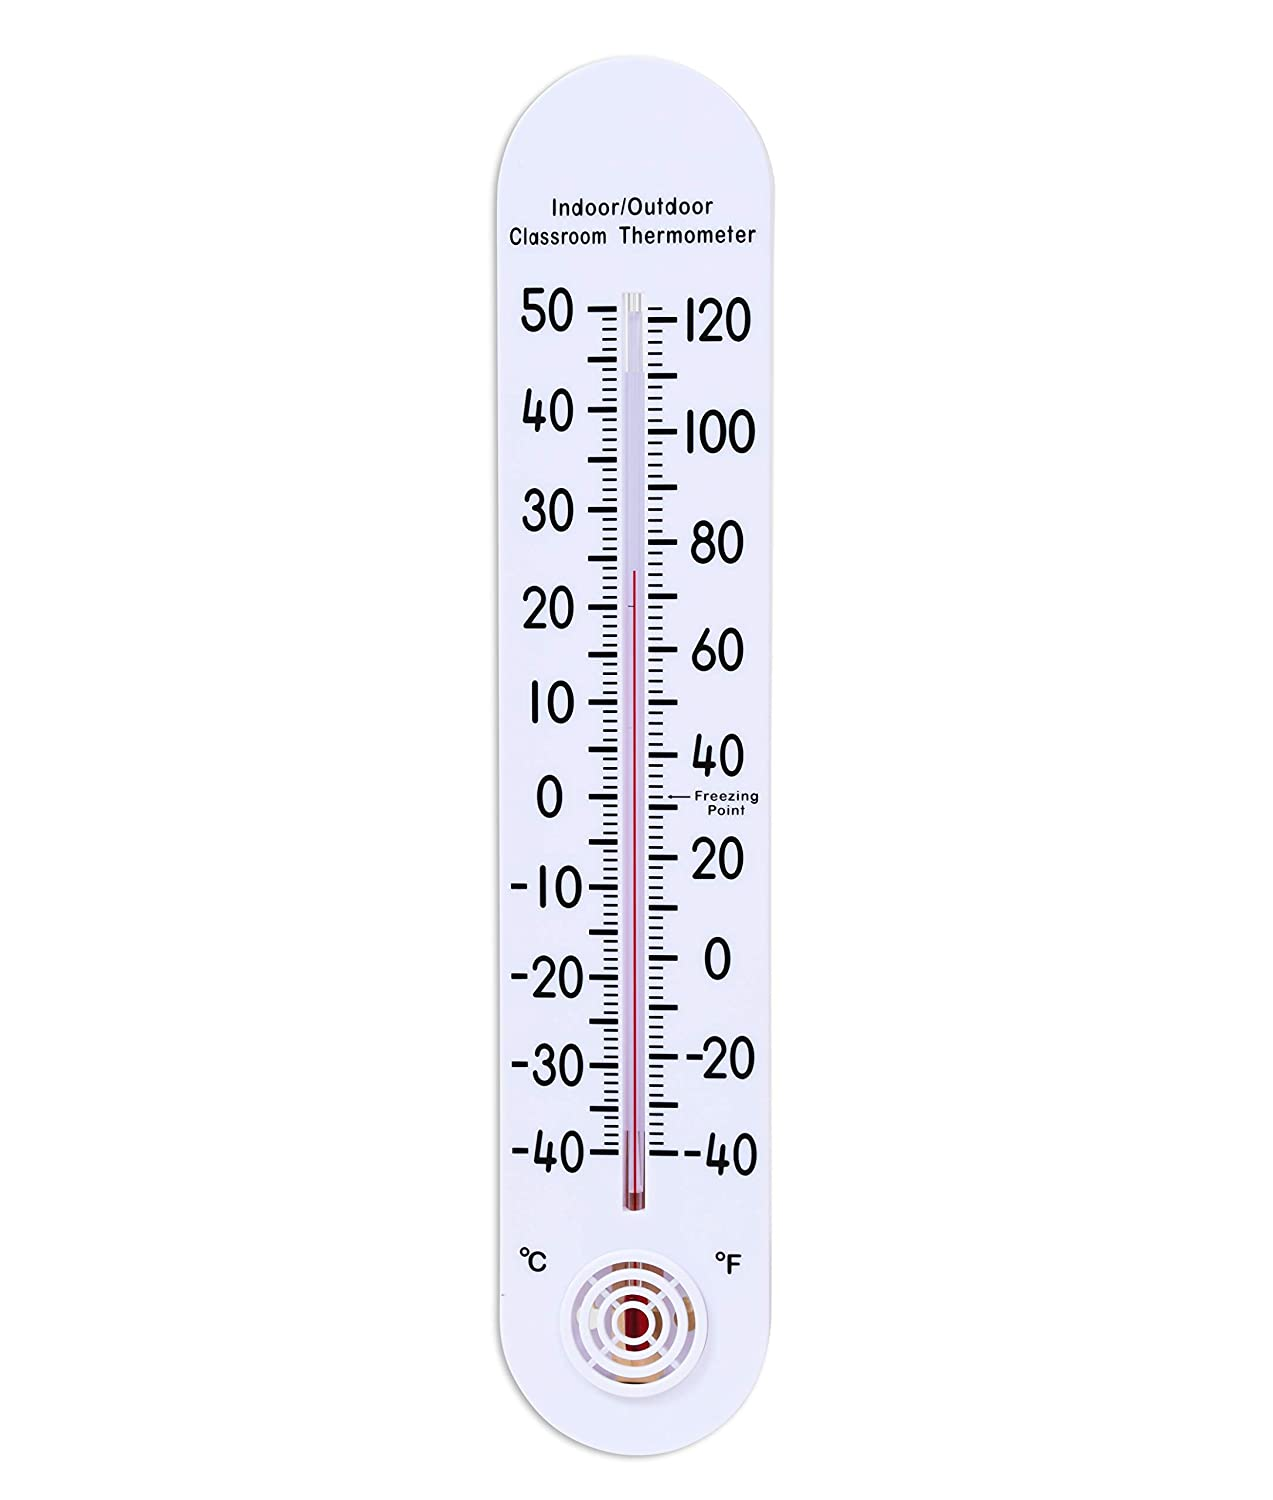 Learning Advantage Indoor/Outdoor Classroom Thermometer Large for School Use Learning Thermometer